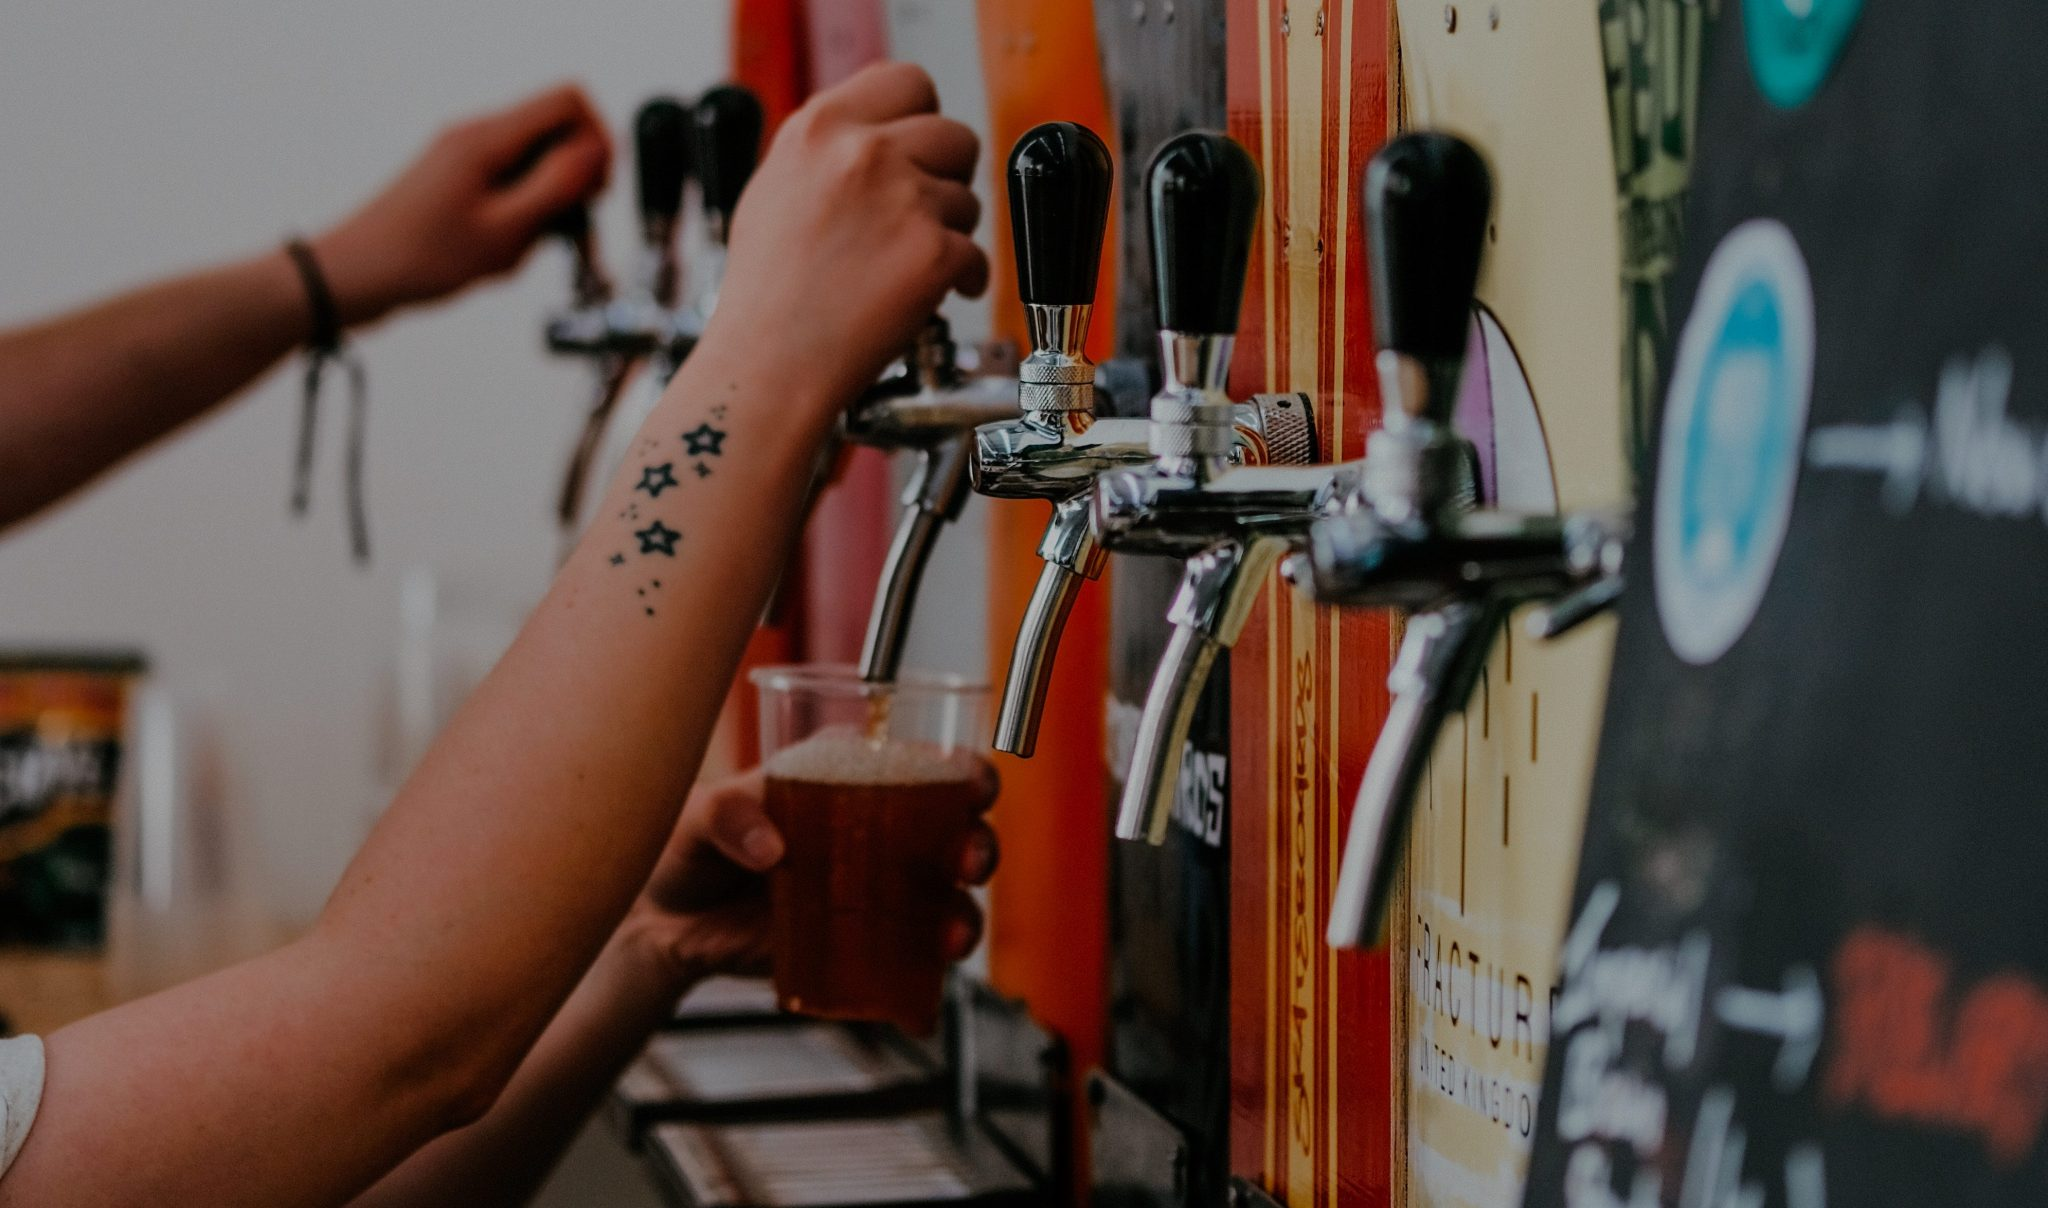 craft lager beer taps in pub made from skateboards